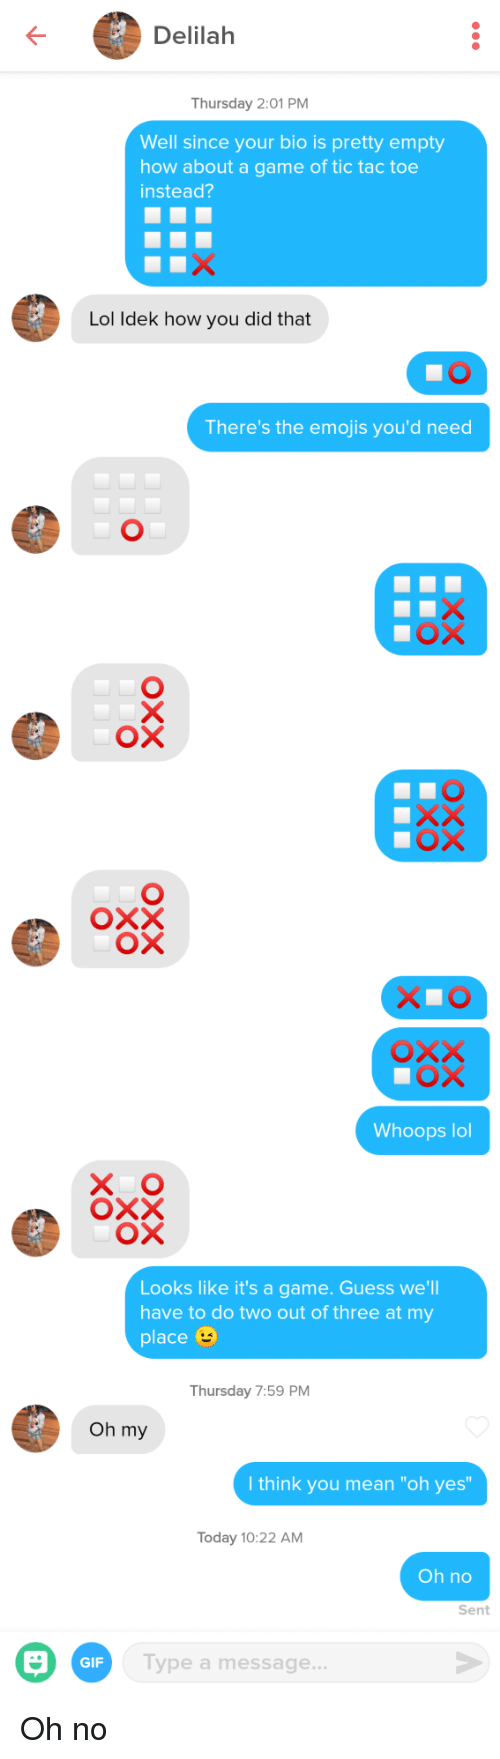 "Gif, Lol, and Emojis: Delilah  Thursday 2:01 PM  Well since your bio is pretty empty  how about a game of tic tac toe  instead?  Lol ldek how you did that  There's the emojis you'd need  ох  Whoops lol  X O  Looks like it's a game. Guess we'll  have to do two out of three at my  place  Thursday 7:59 PM  Oh my  I think you mean ""oh yes  Today 10:22 AM  Oh no  Sent  GIF  Type a message Oh no"